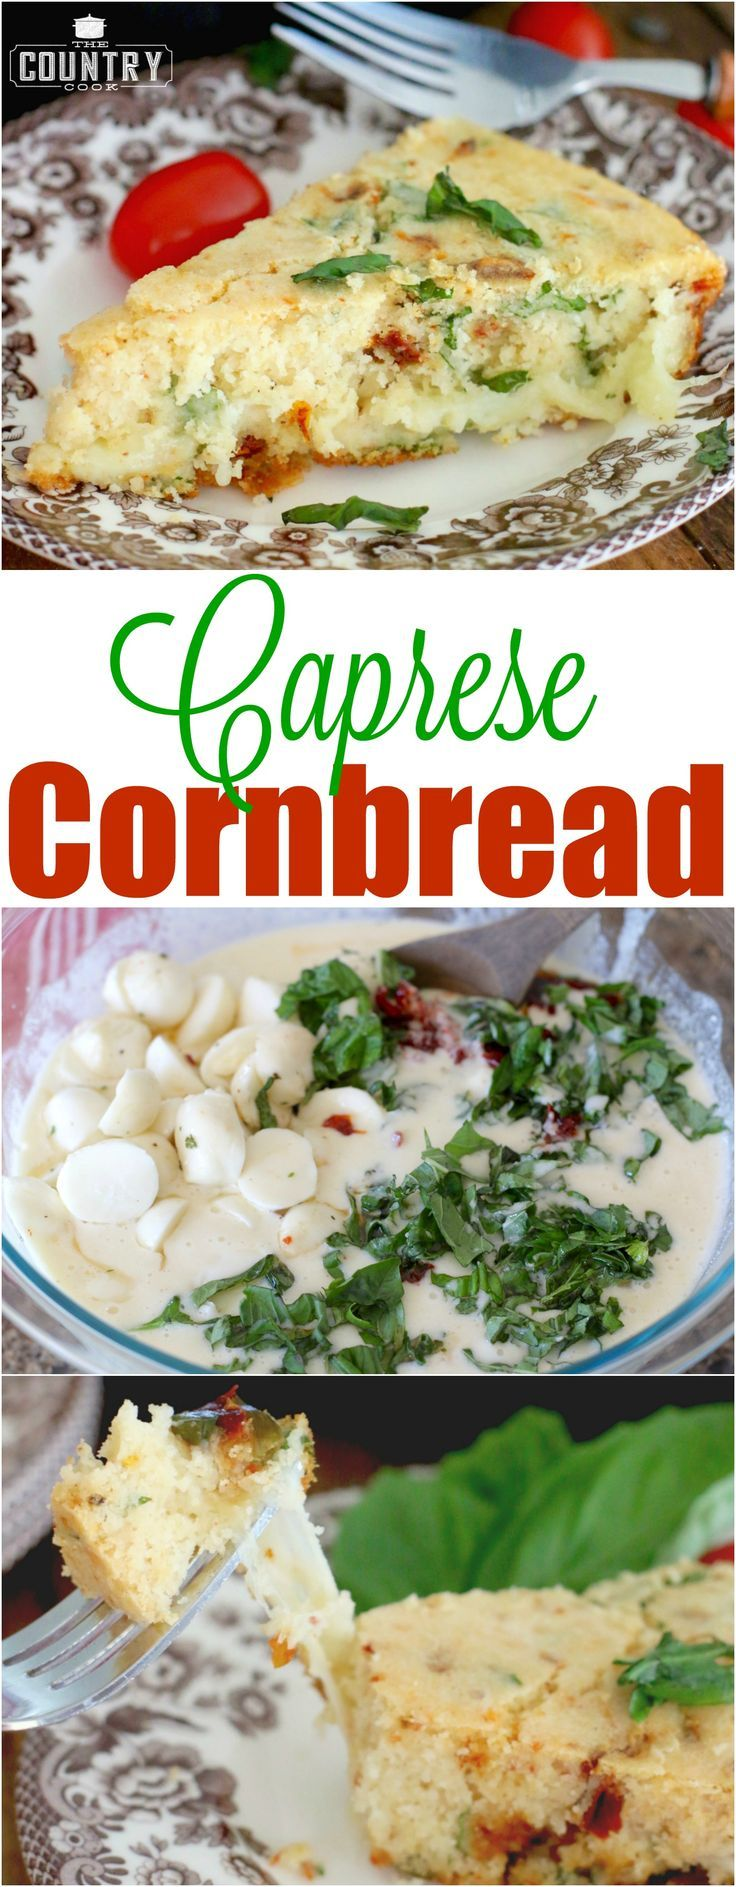 Caprese Skillet Cornbread recipe from The Country Cook